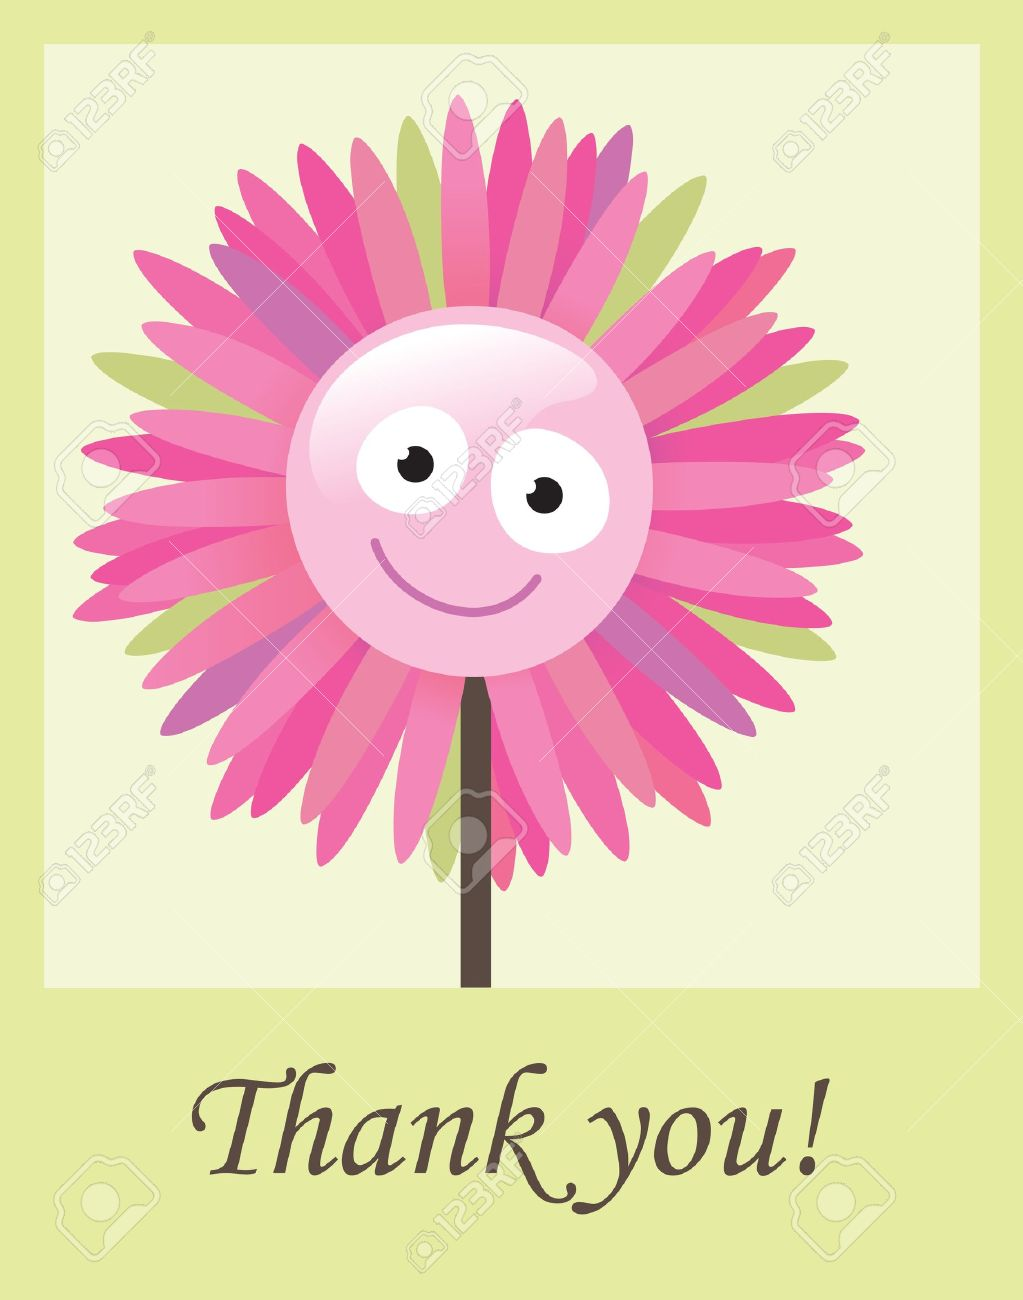 Flower Thank You Card Royalty Free Cliparts, Vectors, And Stock.